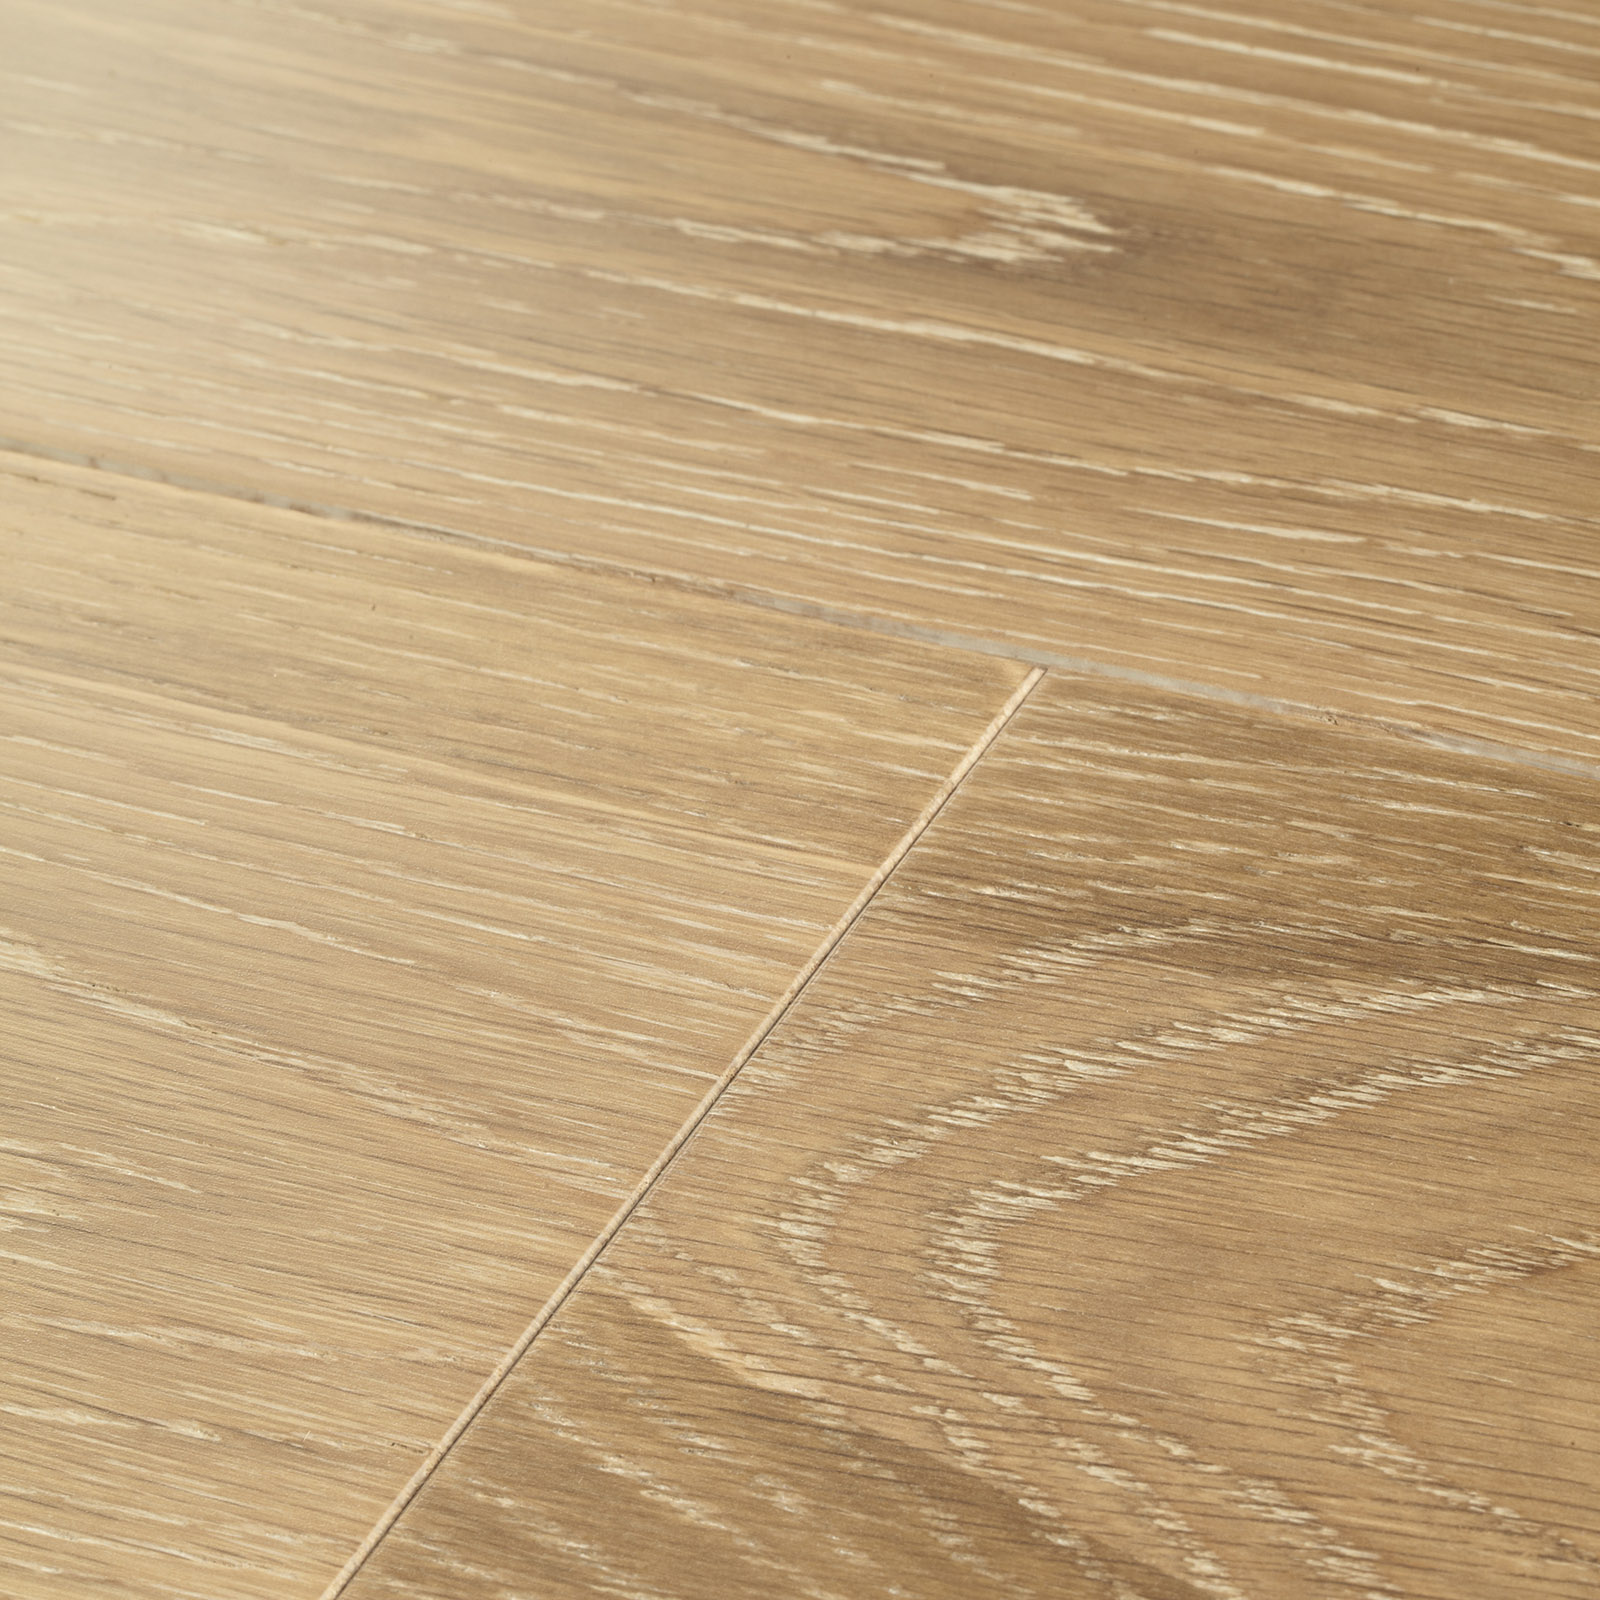 Engineered hardwood floor in white and natural tones